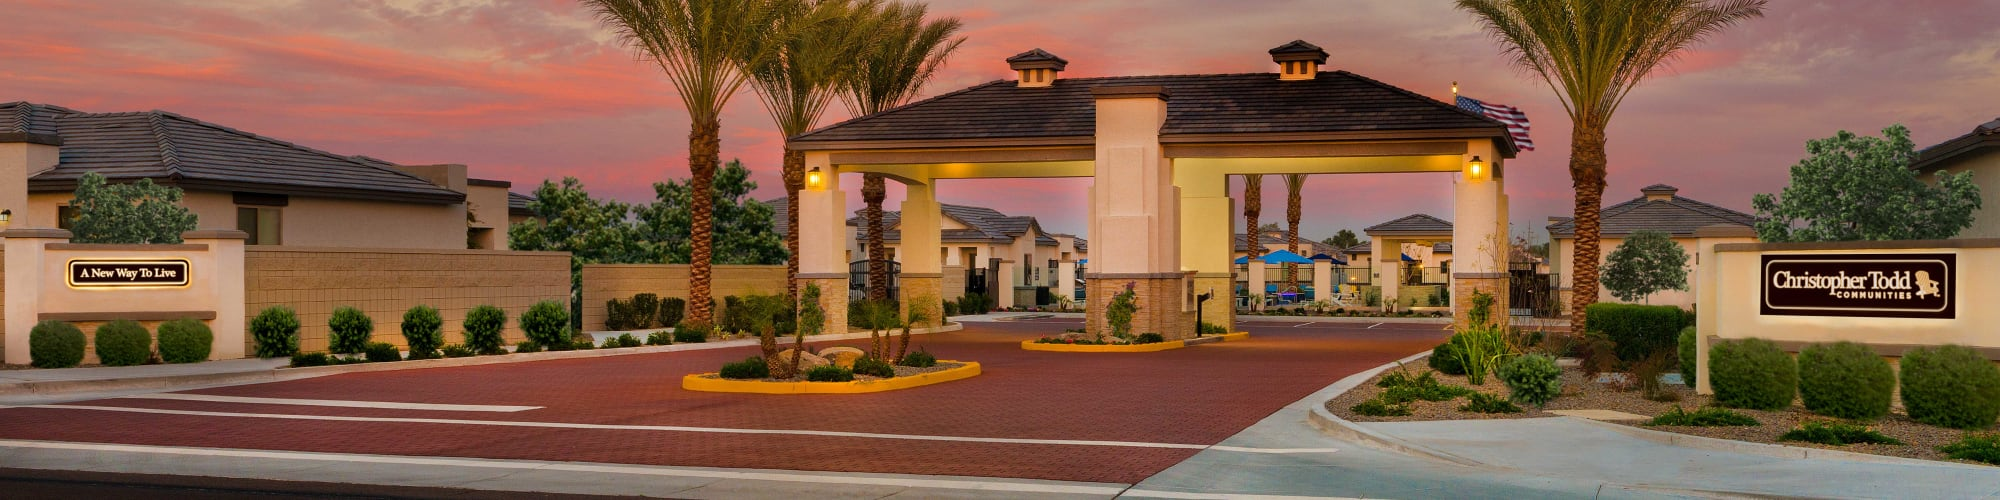 About us at Christopher Todd Communities in Goodyear, Arizona